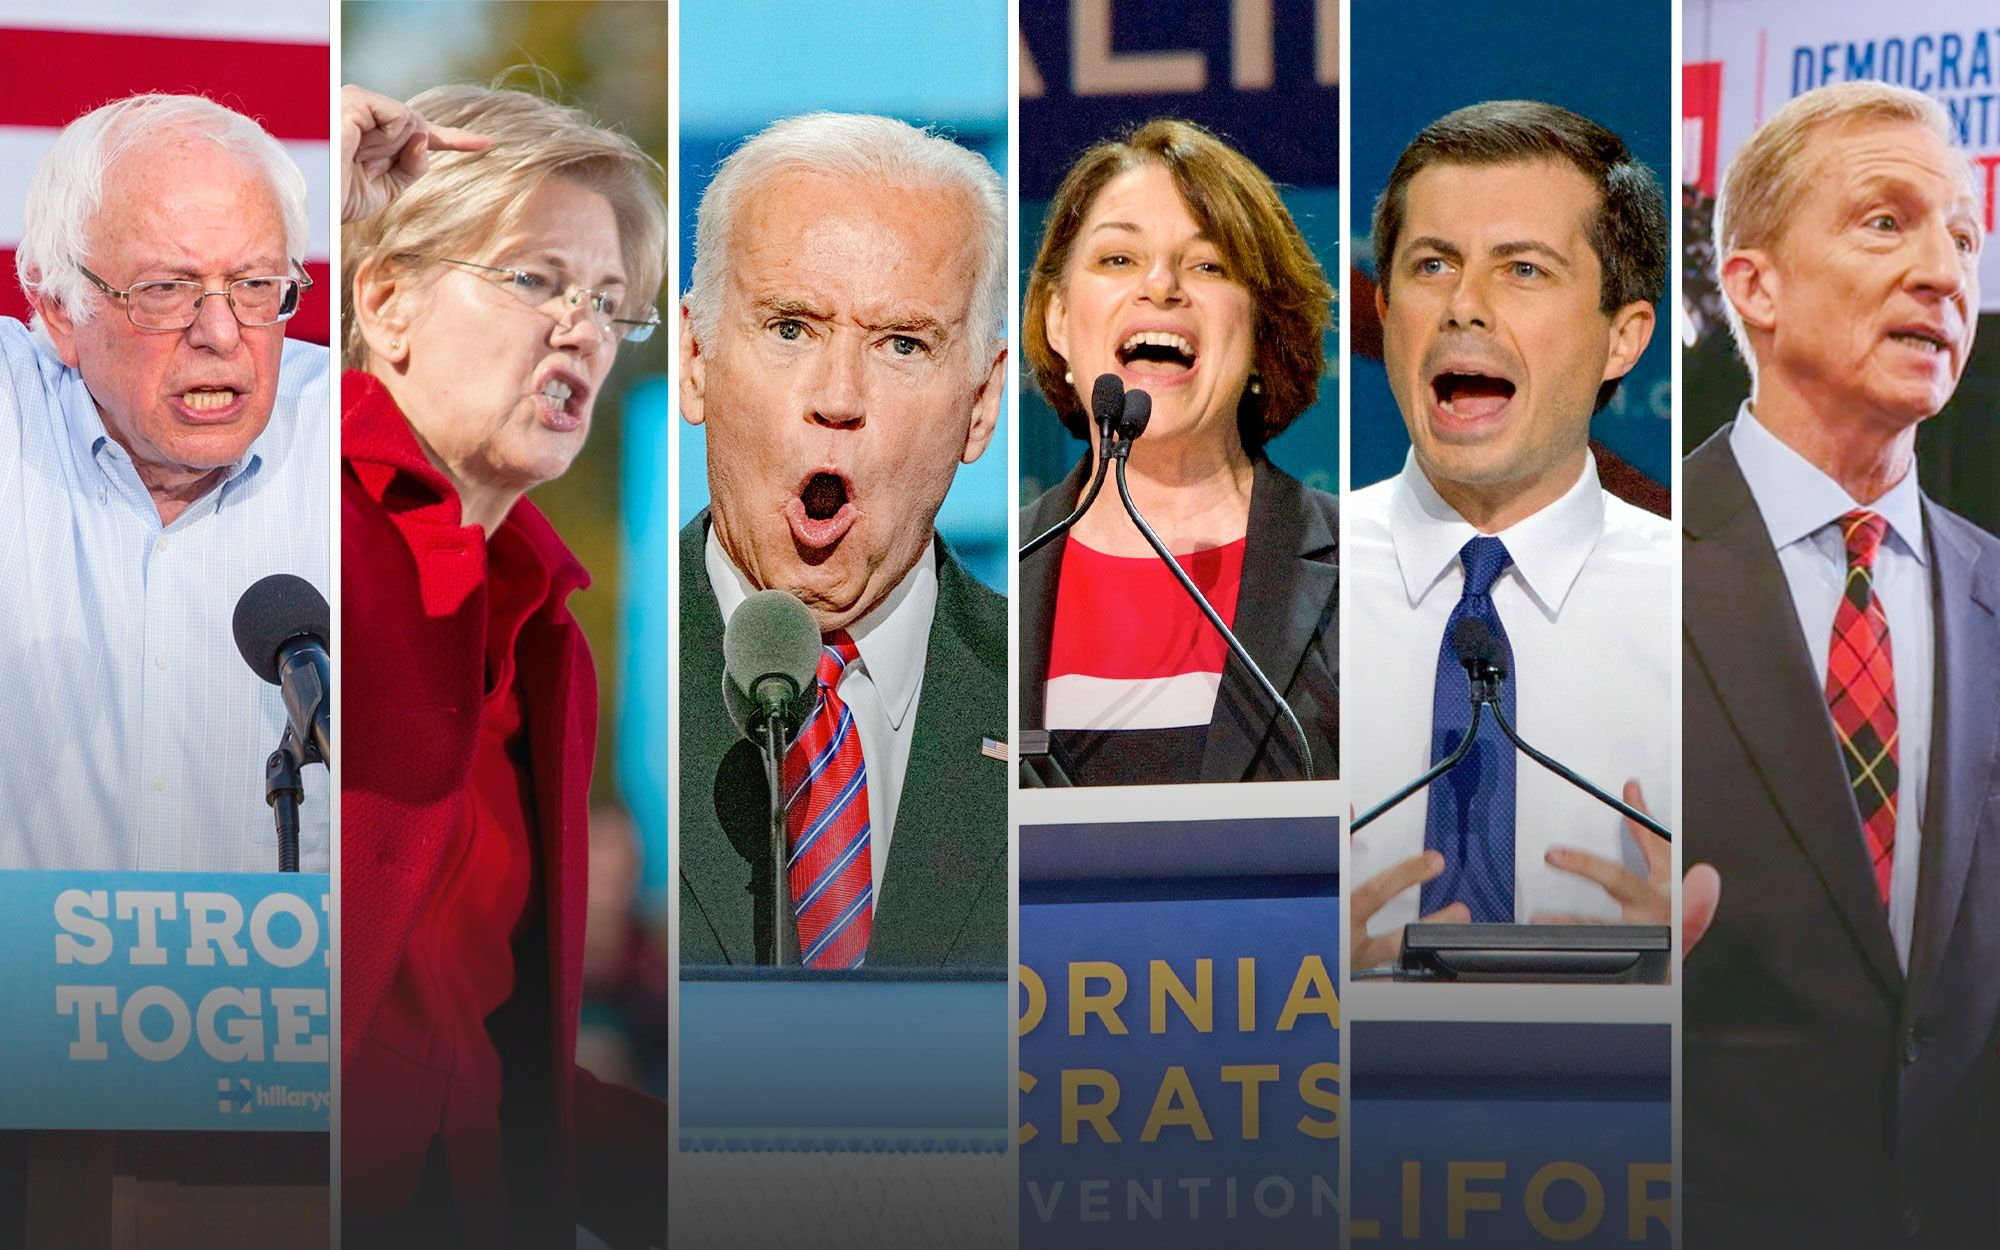 Tonight's Democratic Debate in Iowa Promises to be Filled with Drama